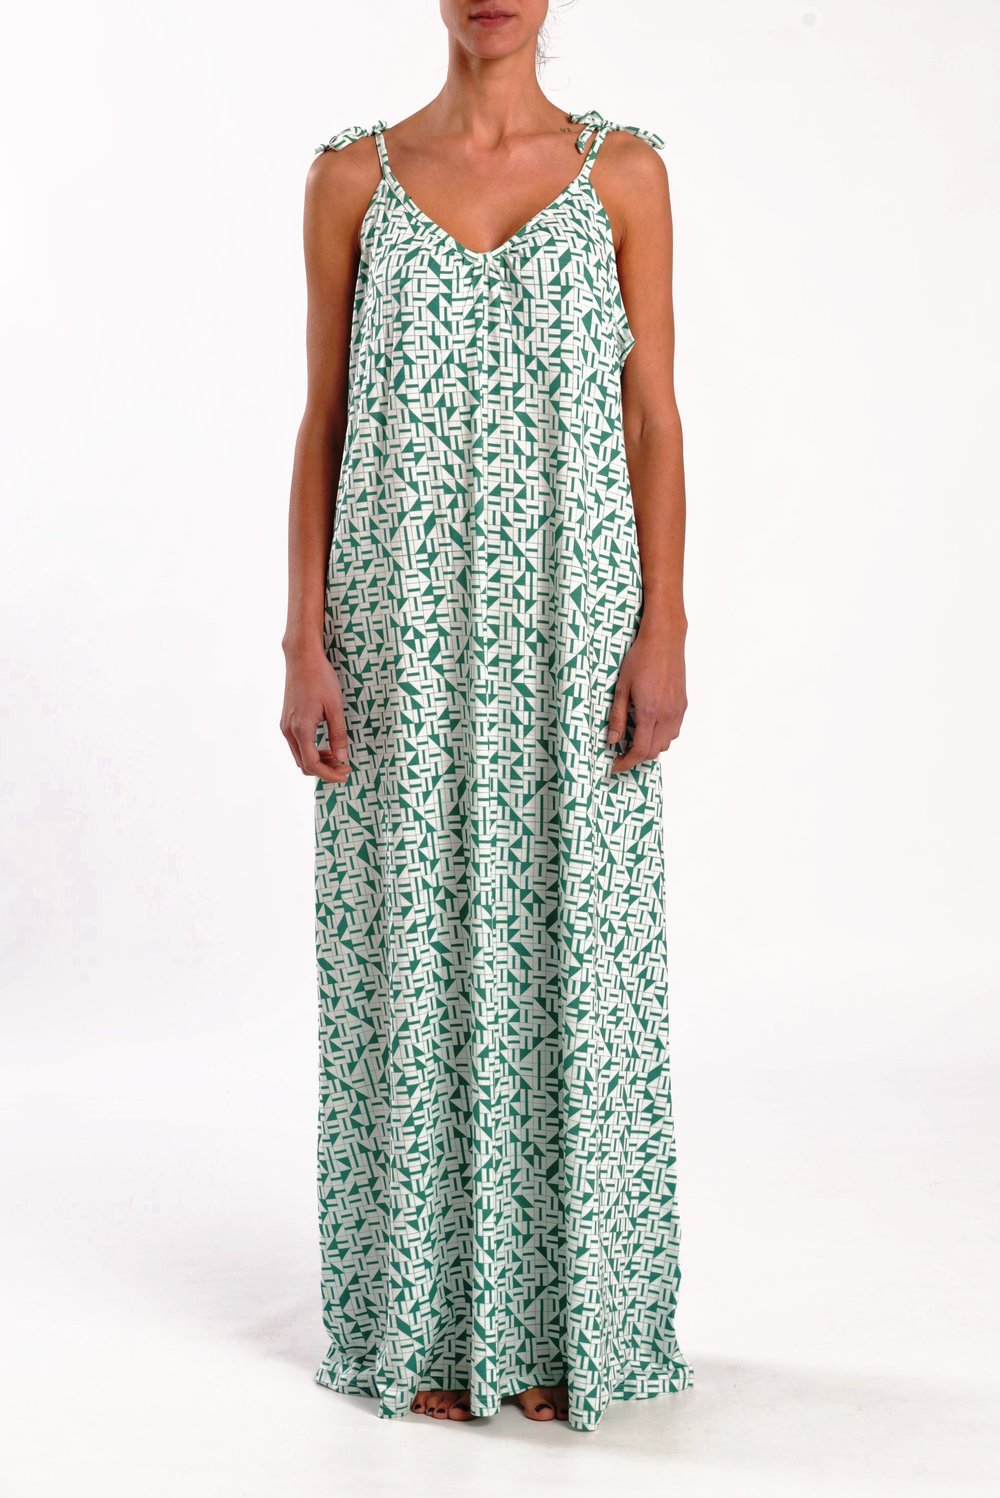 athenian-1960-on-maxi-dress-green-front-1.JPG